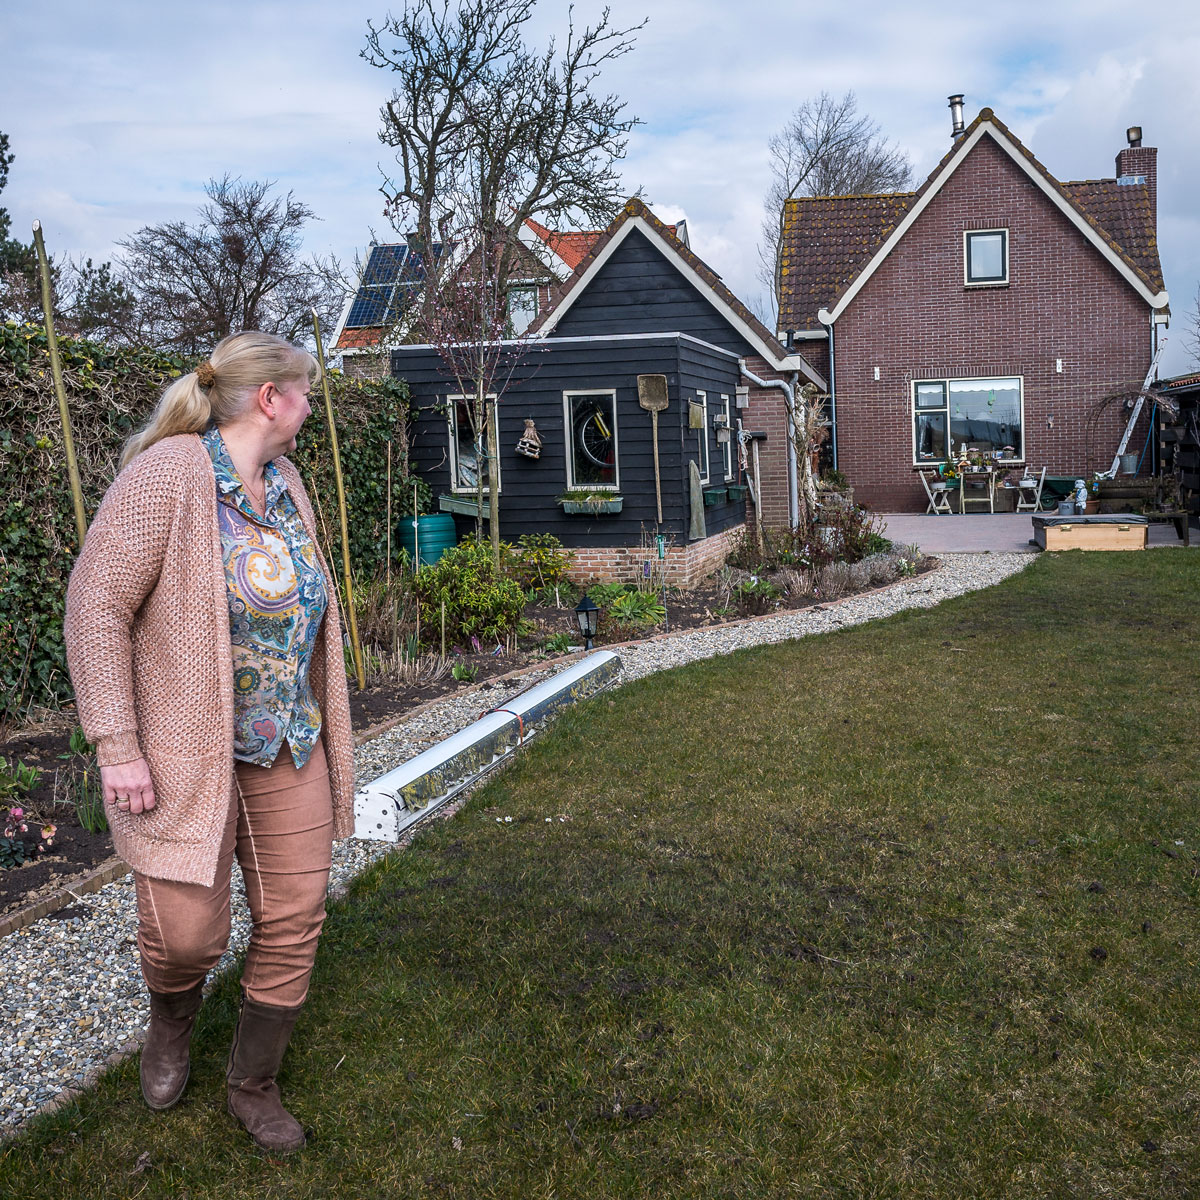 """Anneke van Lelieveld's house sits atop a dike near a """"room for the river"""" project in Noordwaard, the Netherlands. She understands the need for a new approach to managing water in this new era of climate change, but misses the neighbors that the project di"""